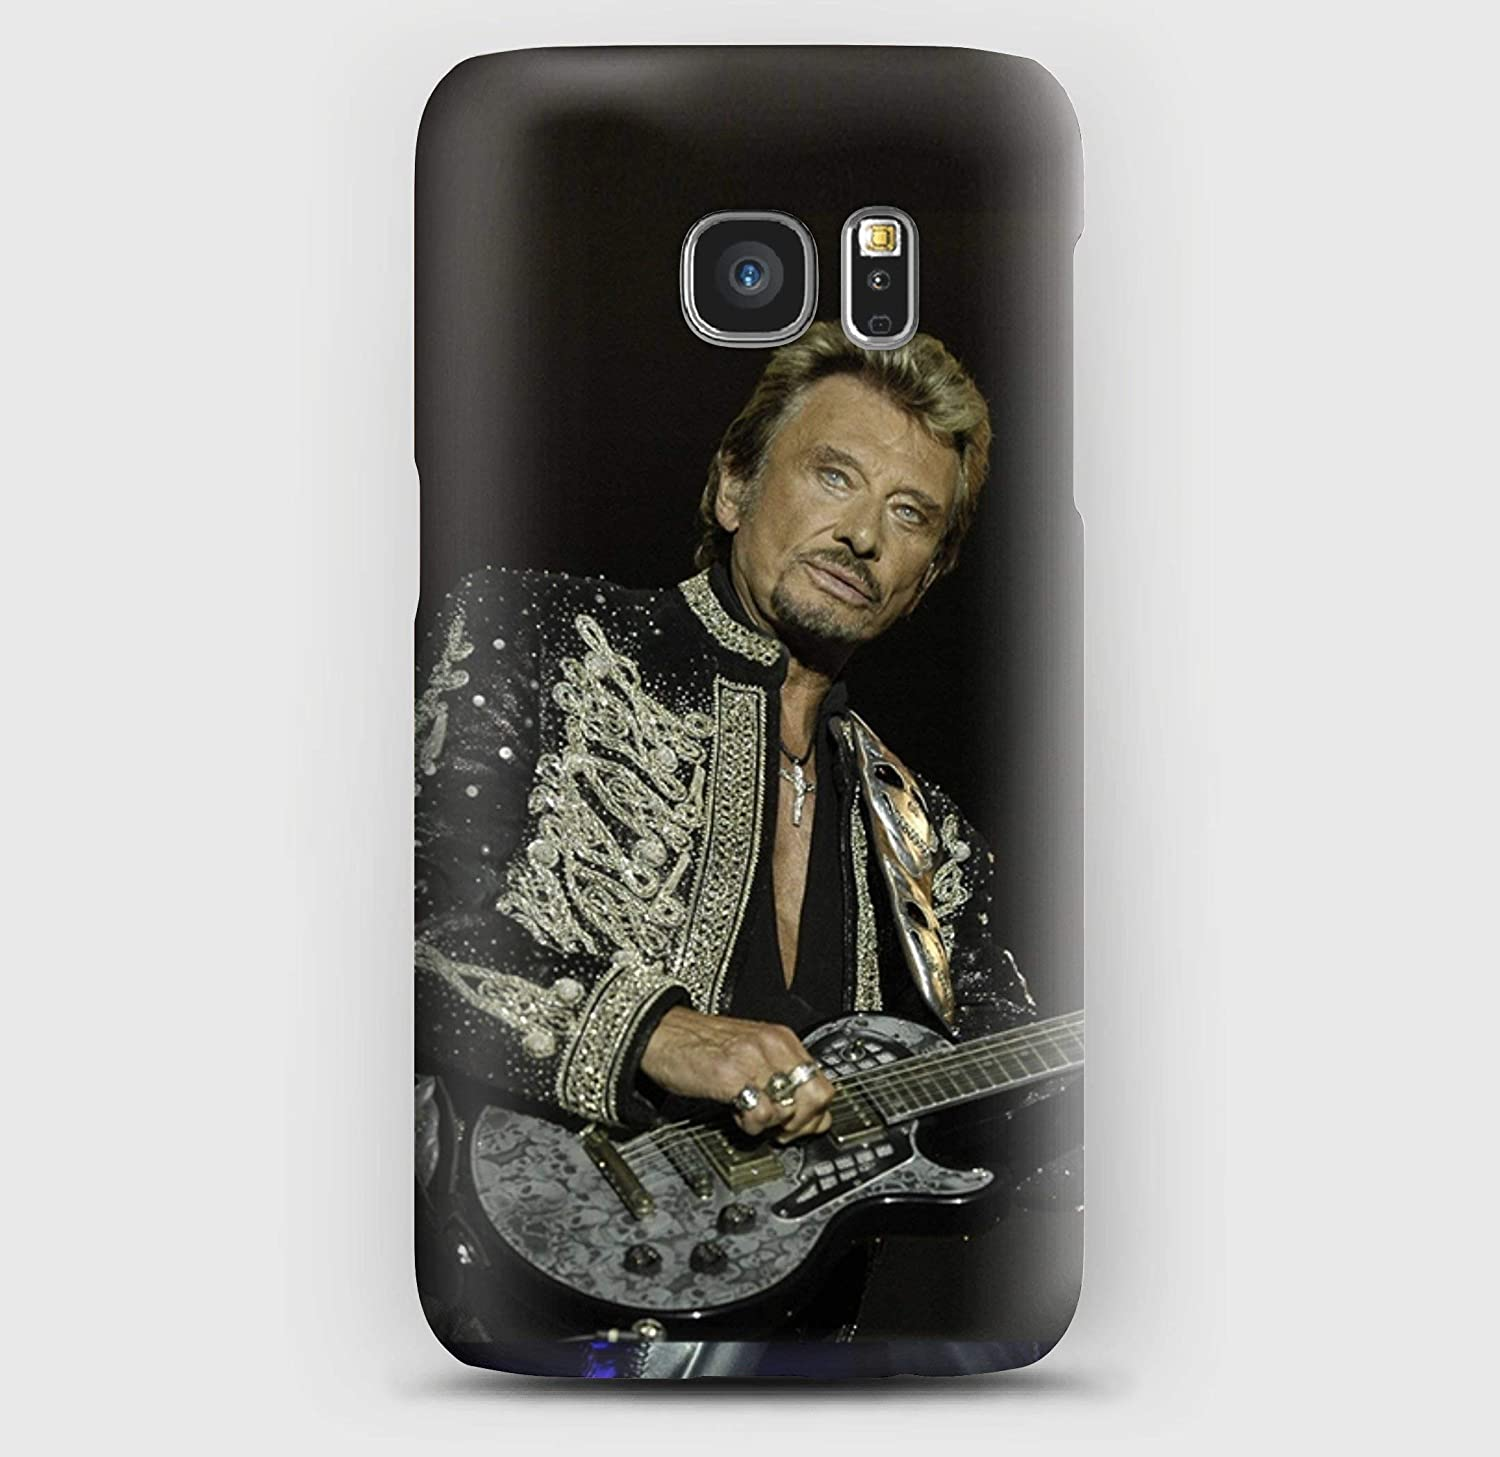 Johnny Hallyday en concert Coque Samsung S5, S6, S7, S8,S9,A3, A5, A7,A8, J3, Note 4, 5, 8,9, Grand prime,